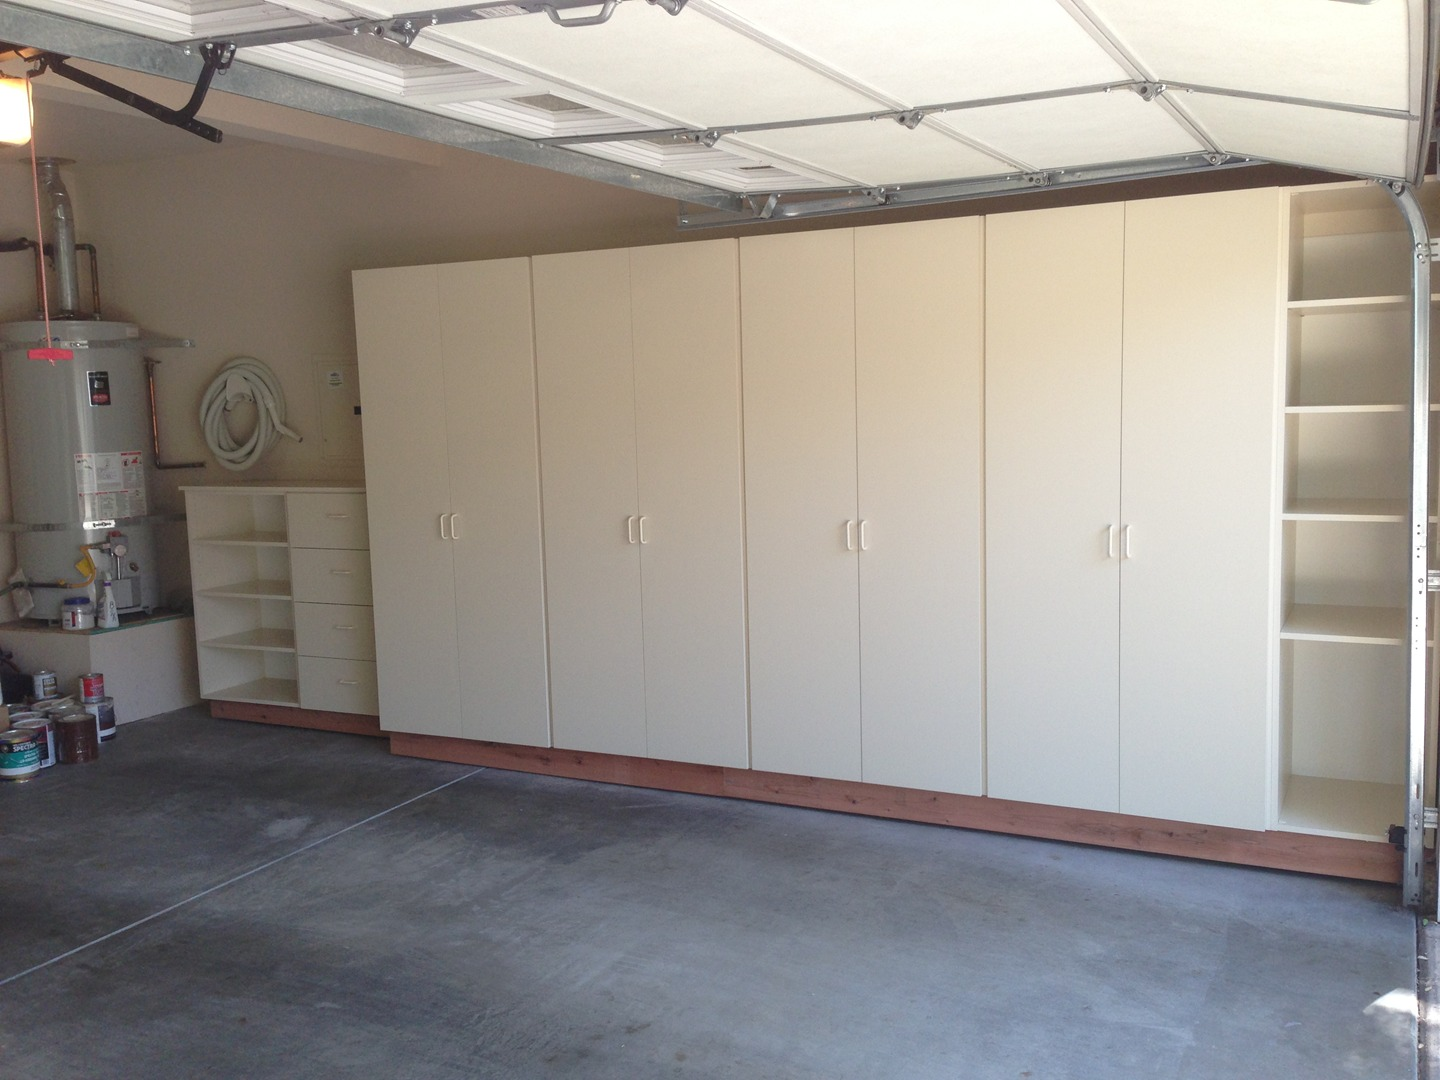 systems the hills doctor dorado roseville el cabinets garage sacramento organization custom closet